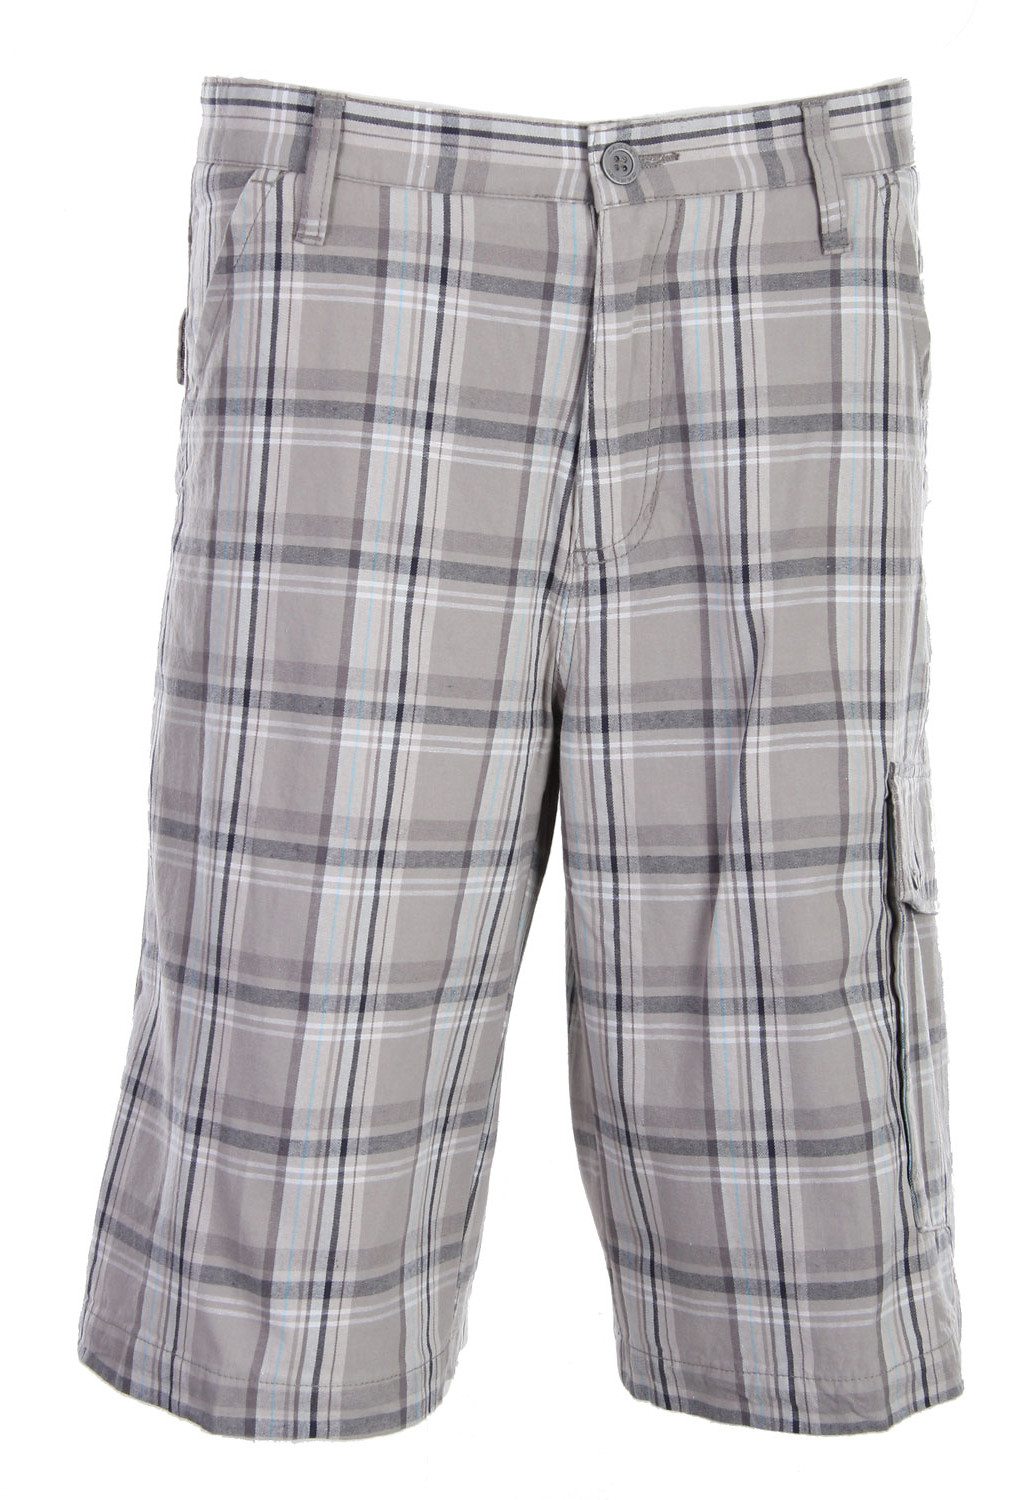 Oakley Prepster Plaid Short Neutral Grey  oakley-prepster-sht-neutralgry-10.jpg